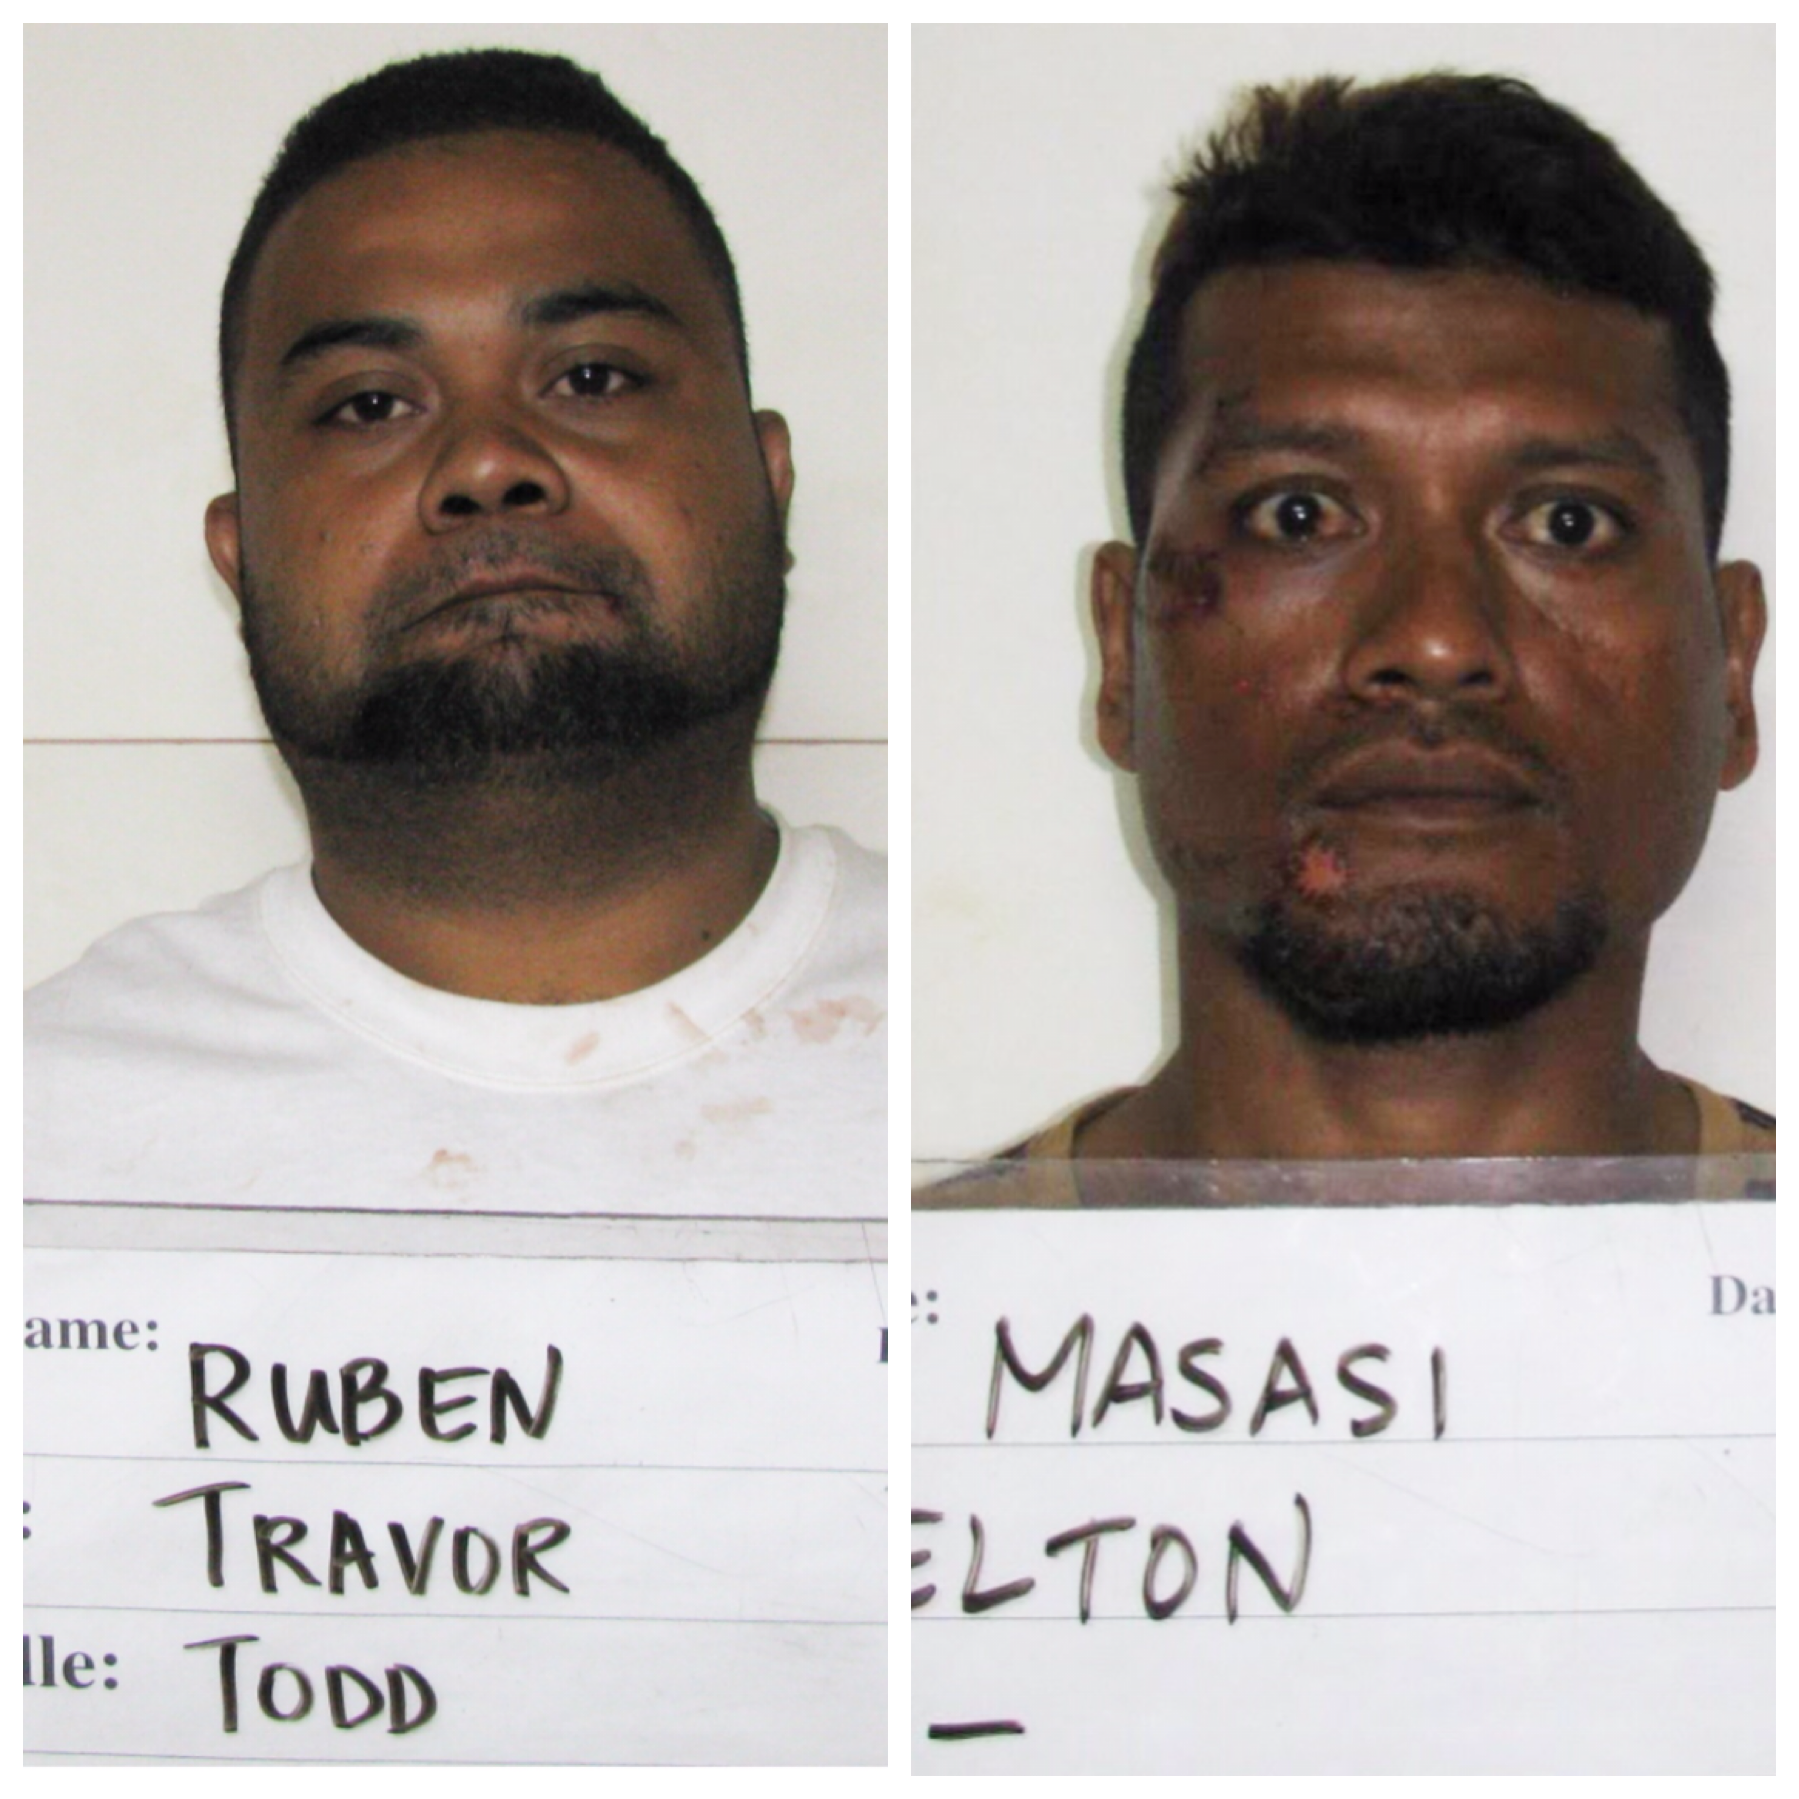 Travor Todd Ruben, Elton Masasi charged in road rage attack